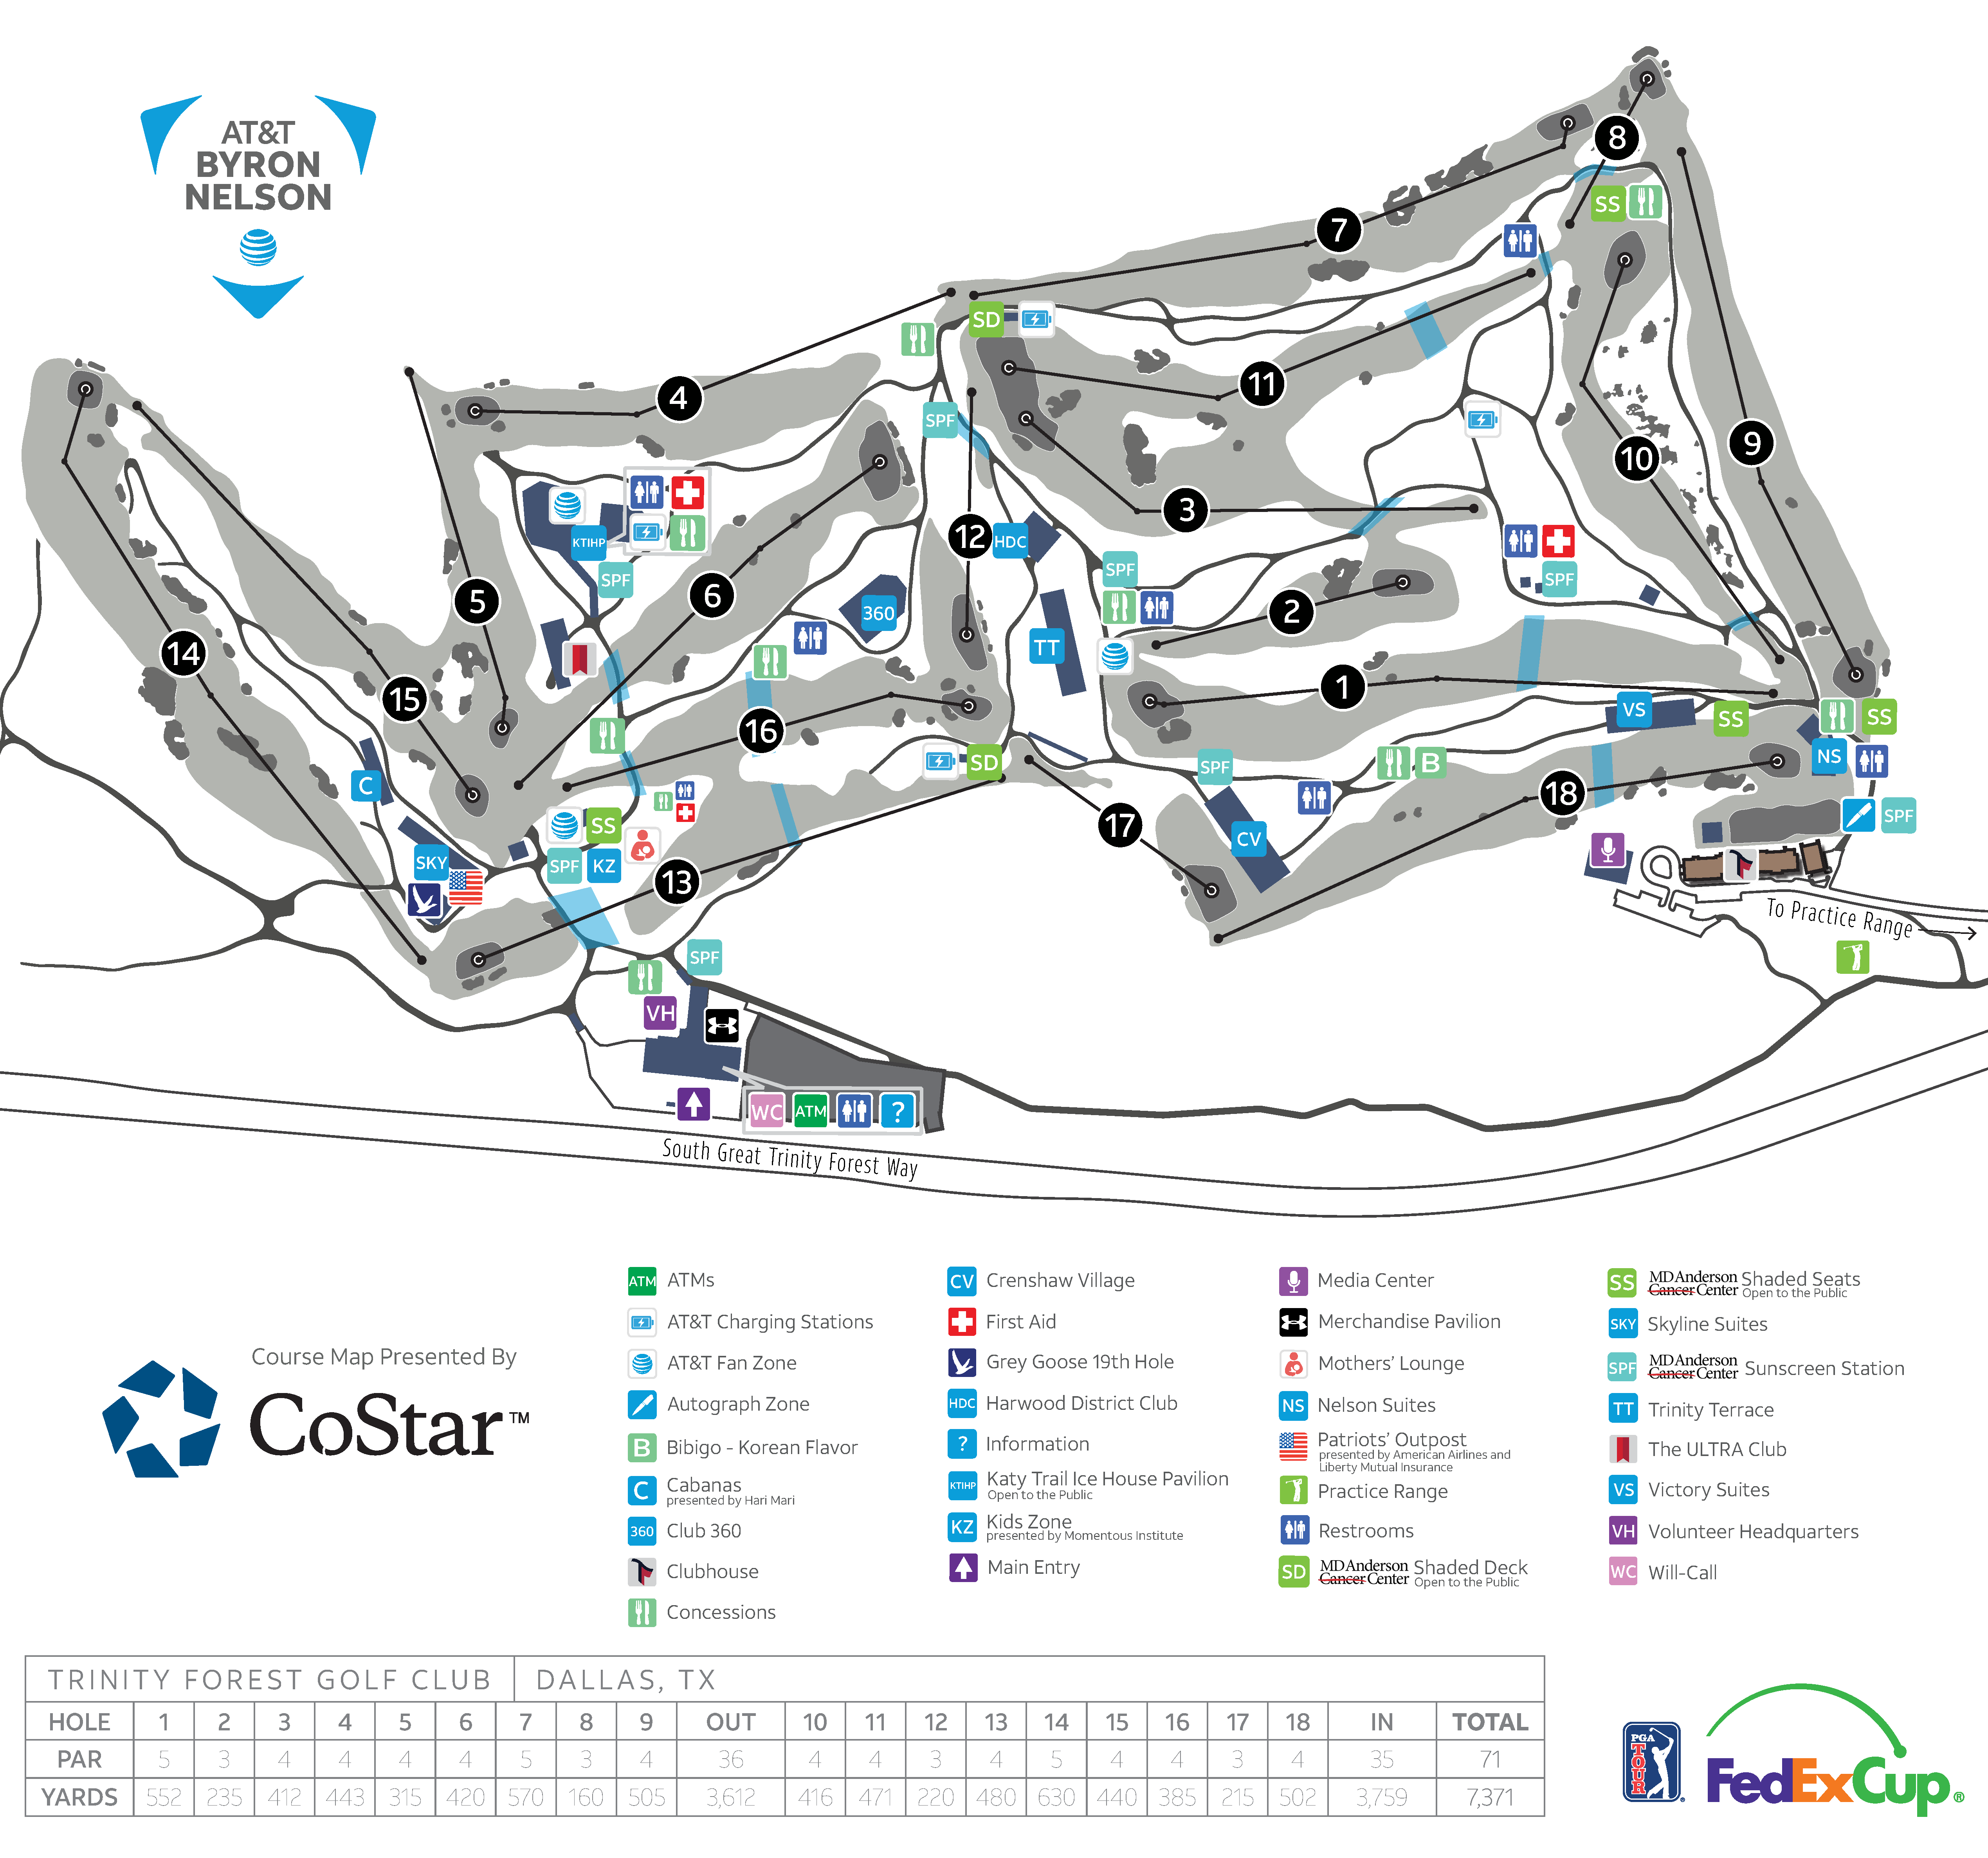 AT&T Byron Nelson | Course Details & Map